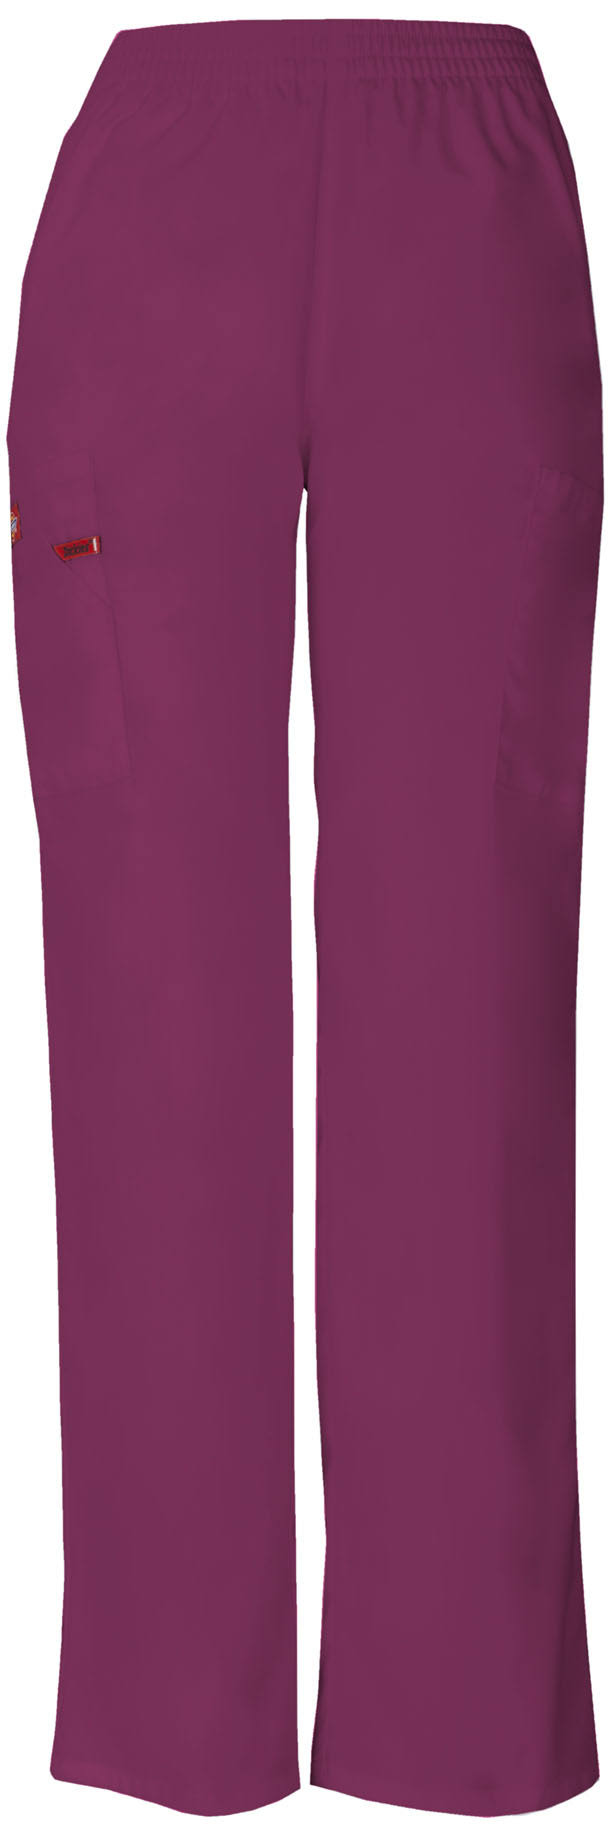 Dickies EDS Signature Women's Missy Fit Pull-On Scrub Pant - Wine (XL)